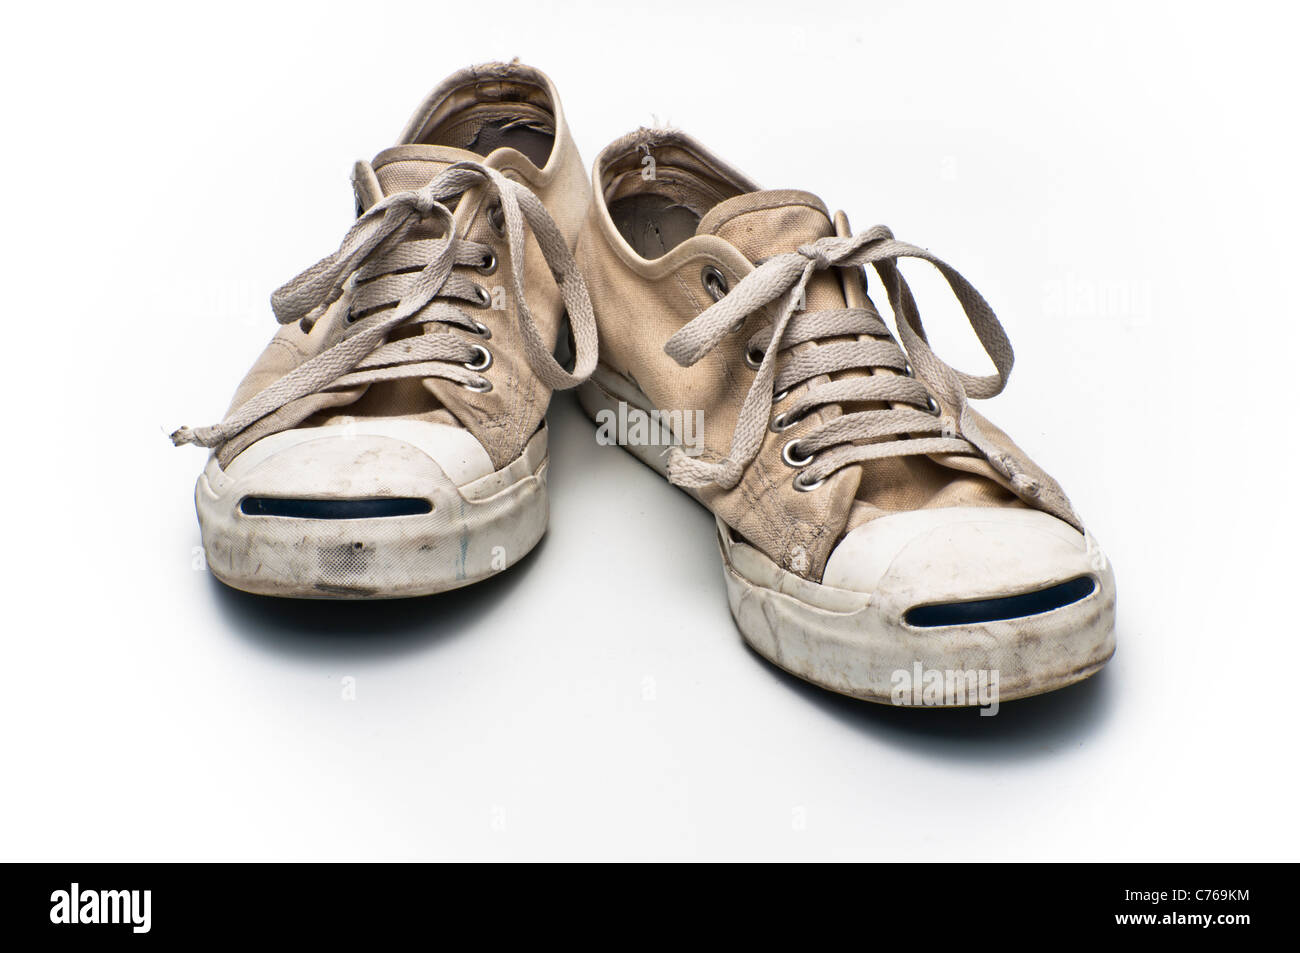 Where To Buy Converse Tennis Shoes